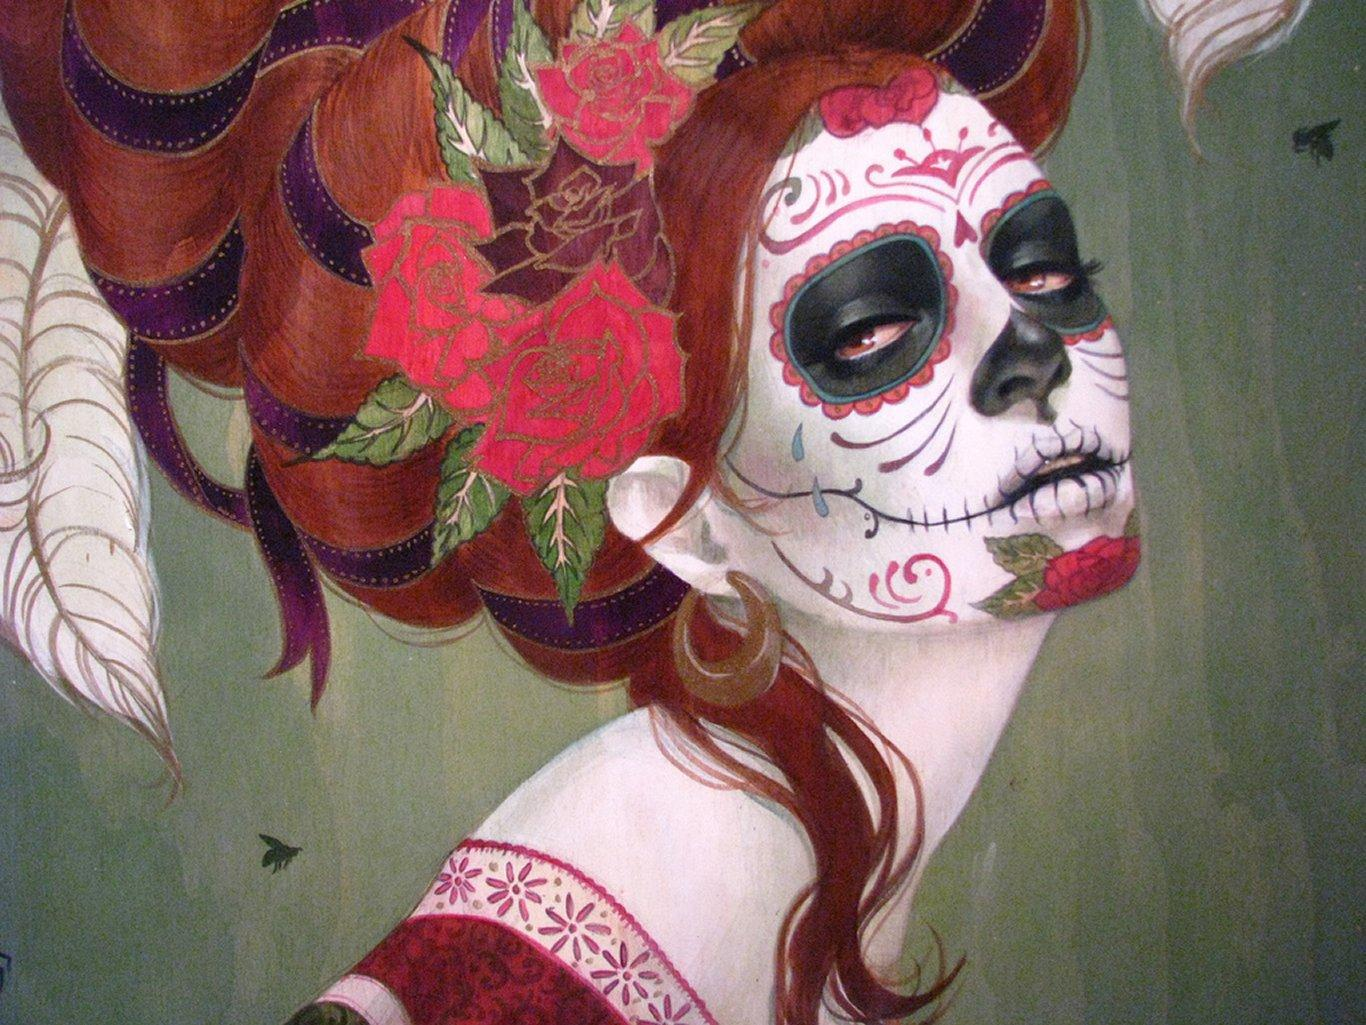 sugar skull wallpaper  HD Photo Wallpaper Collection HD WALLPAPERS 1366x1025